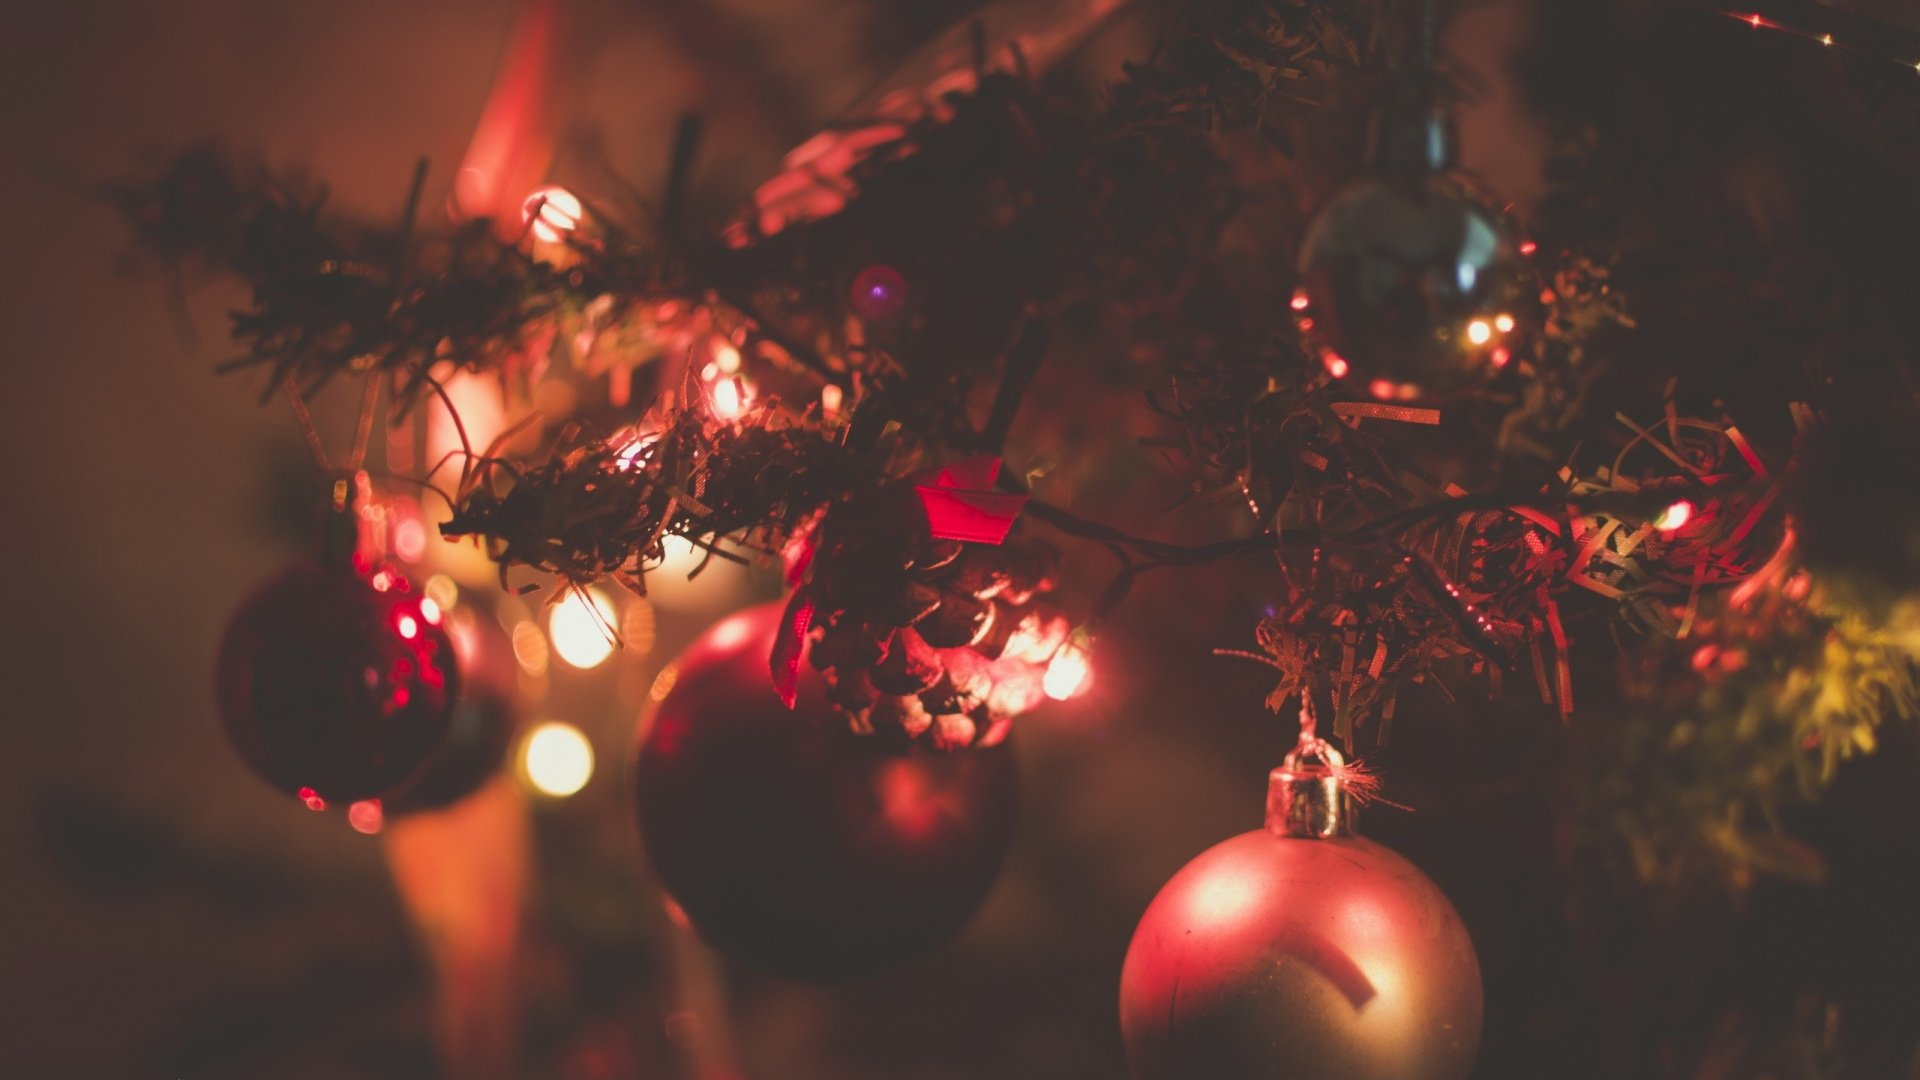 Aesthetic Christmas Background Download Full